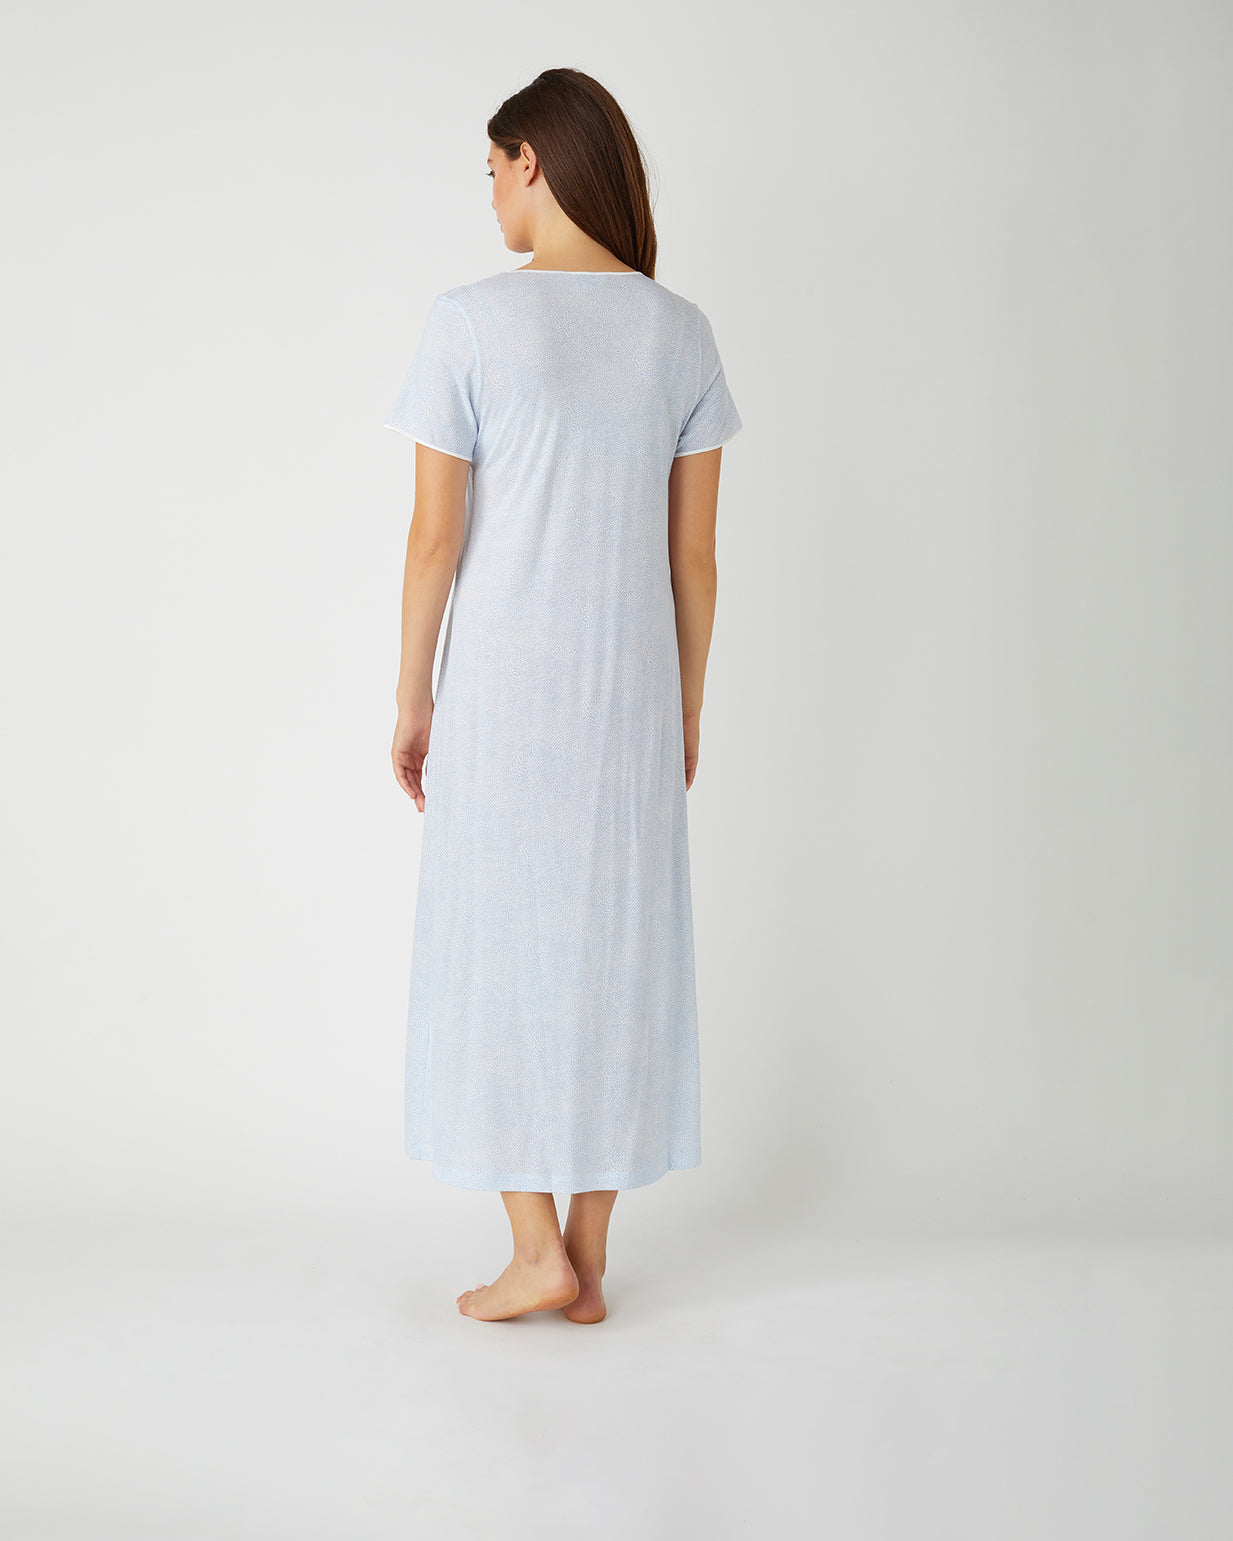 French Pleat Blue Swirl Short Sleeve Nightdress | Bonsoir of London